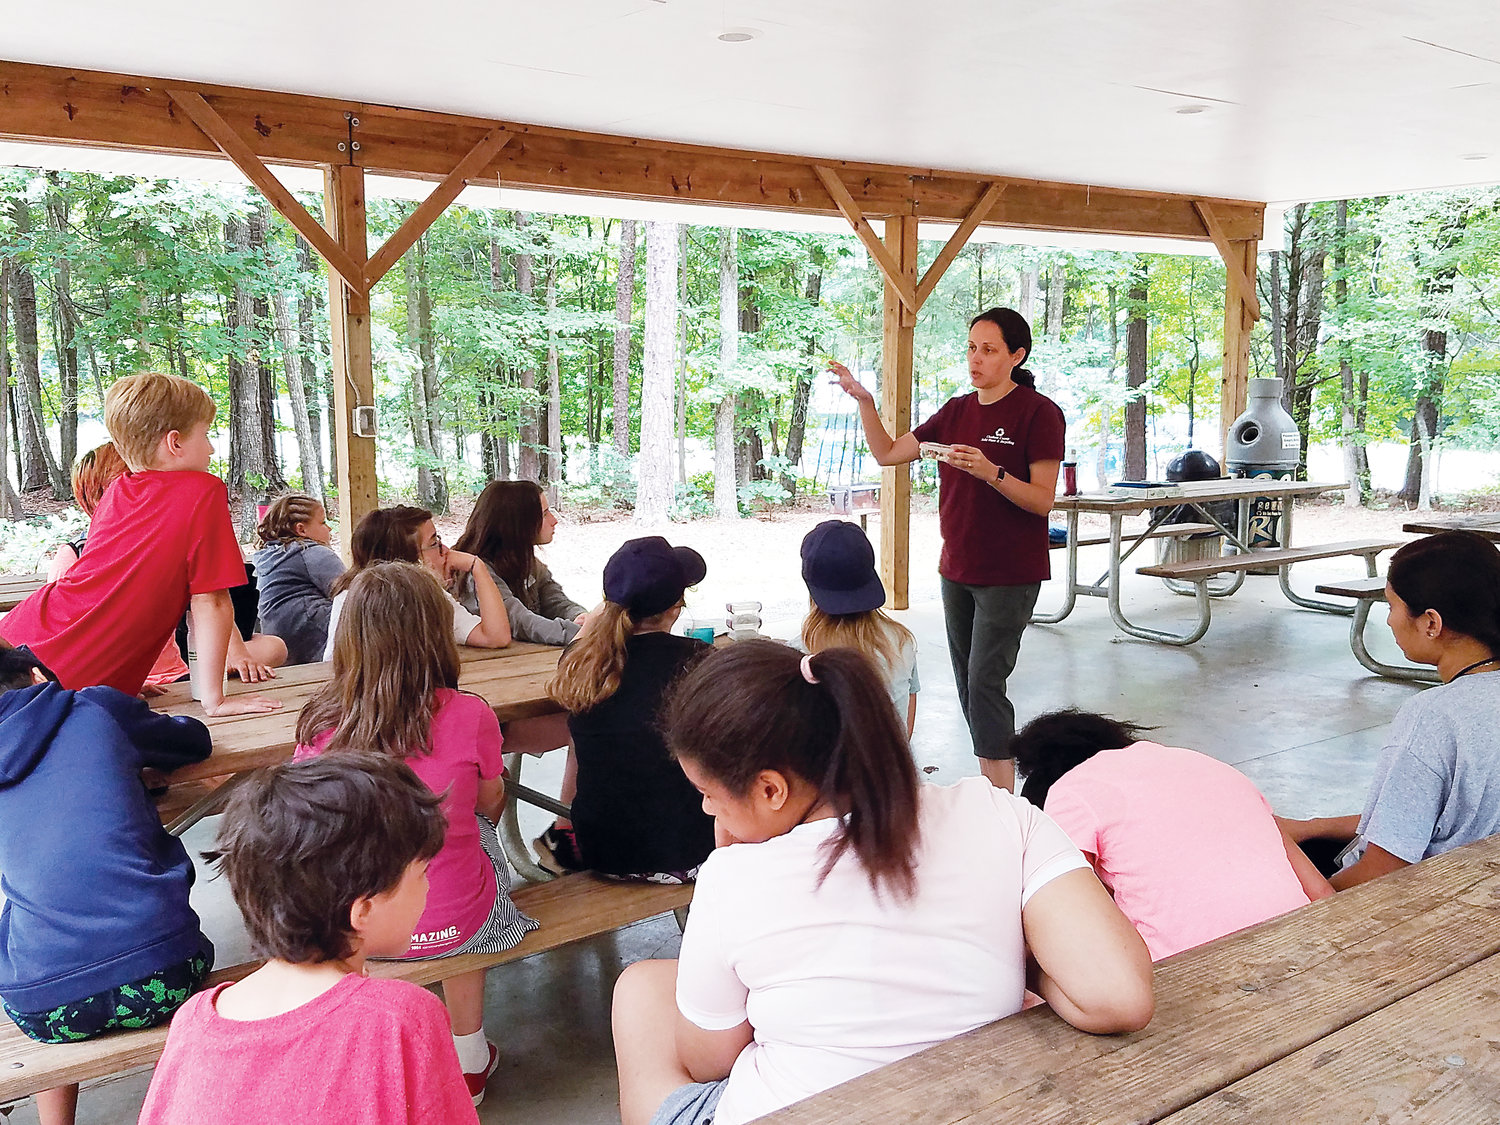 Here Shannon Culpepper, Waste Reduction Coordinator for Chatham County Solid Waste & Recycling, is .teaching a recycling lesson at 4-H camp.